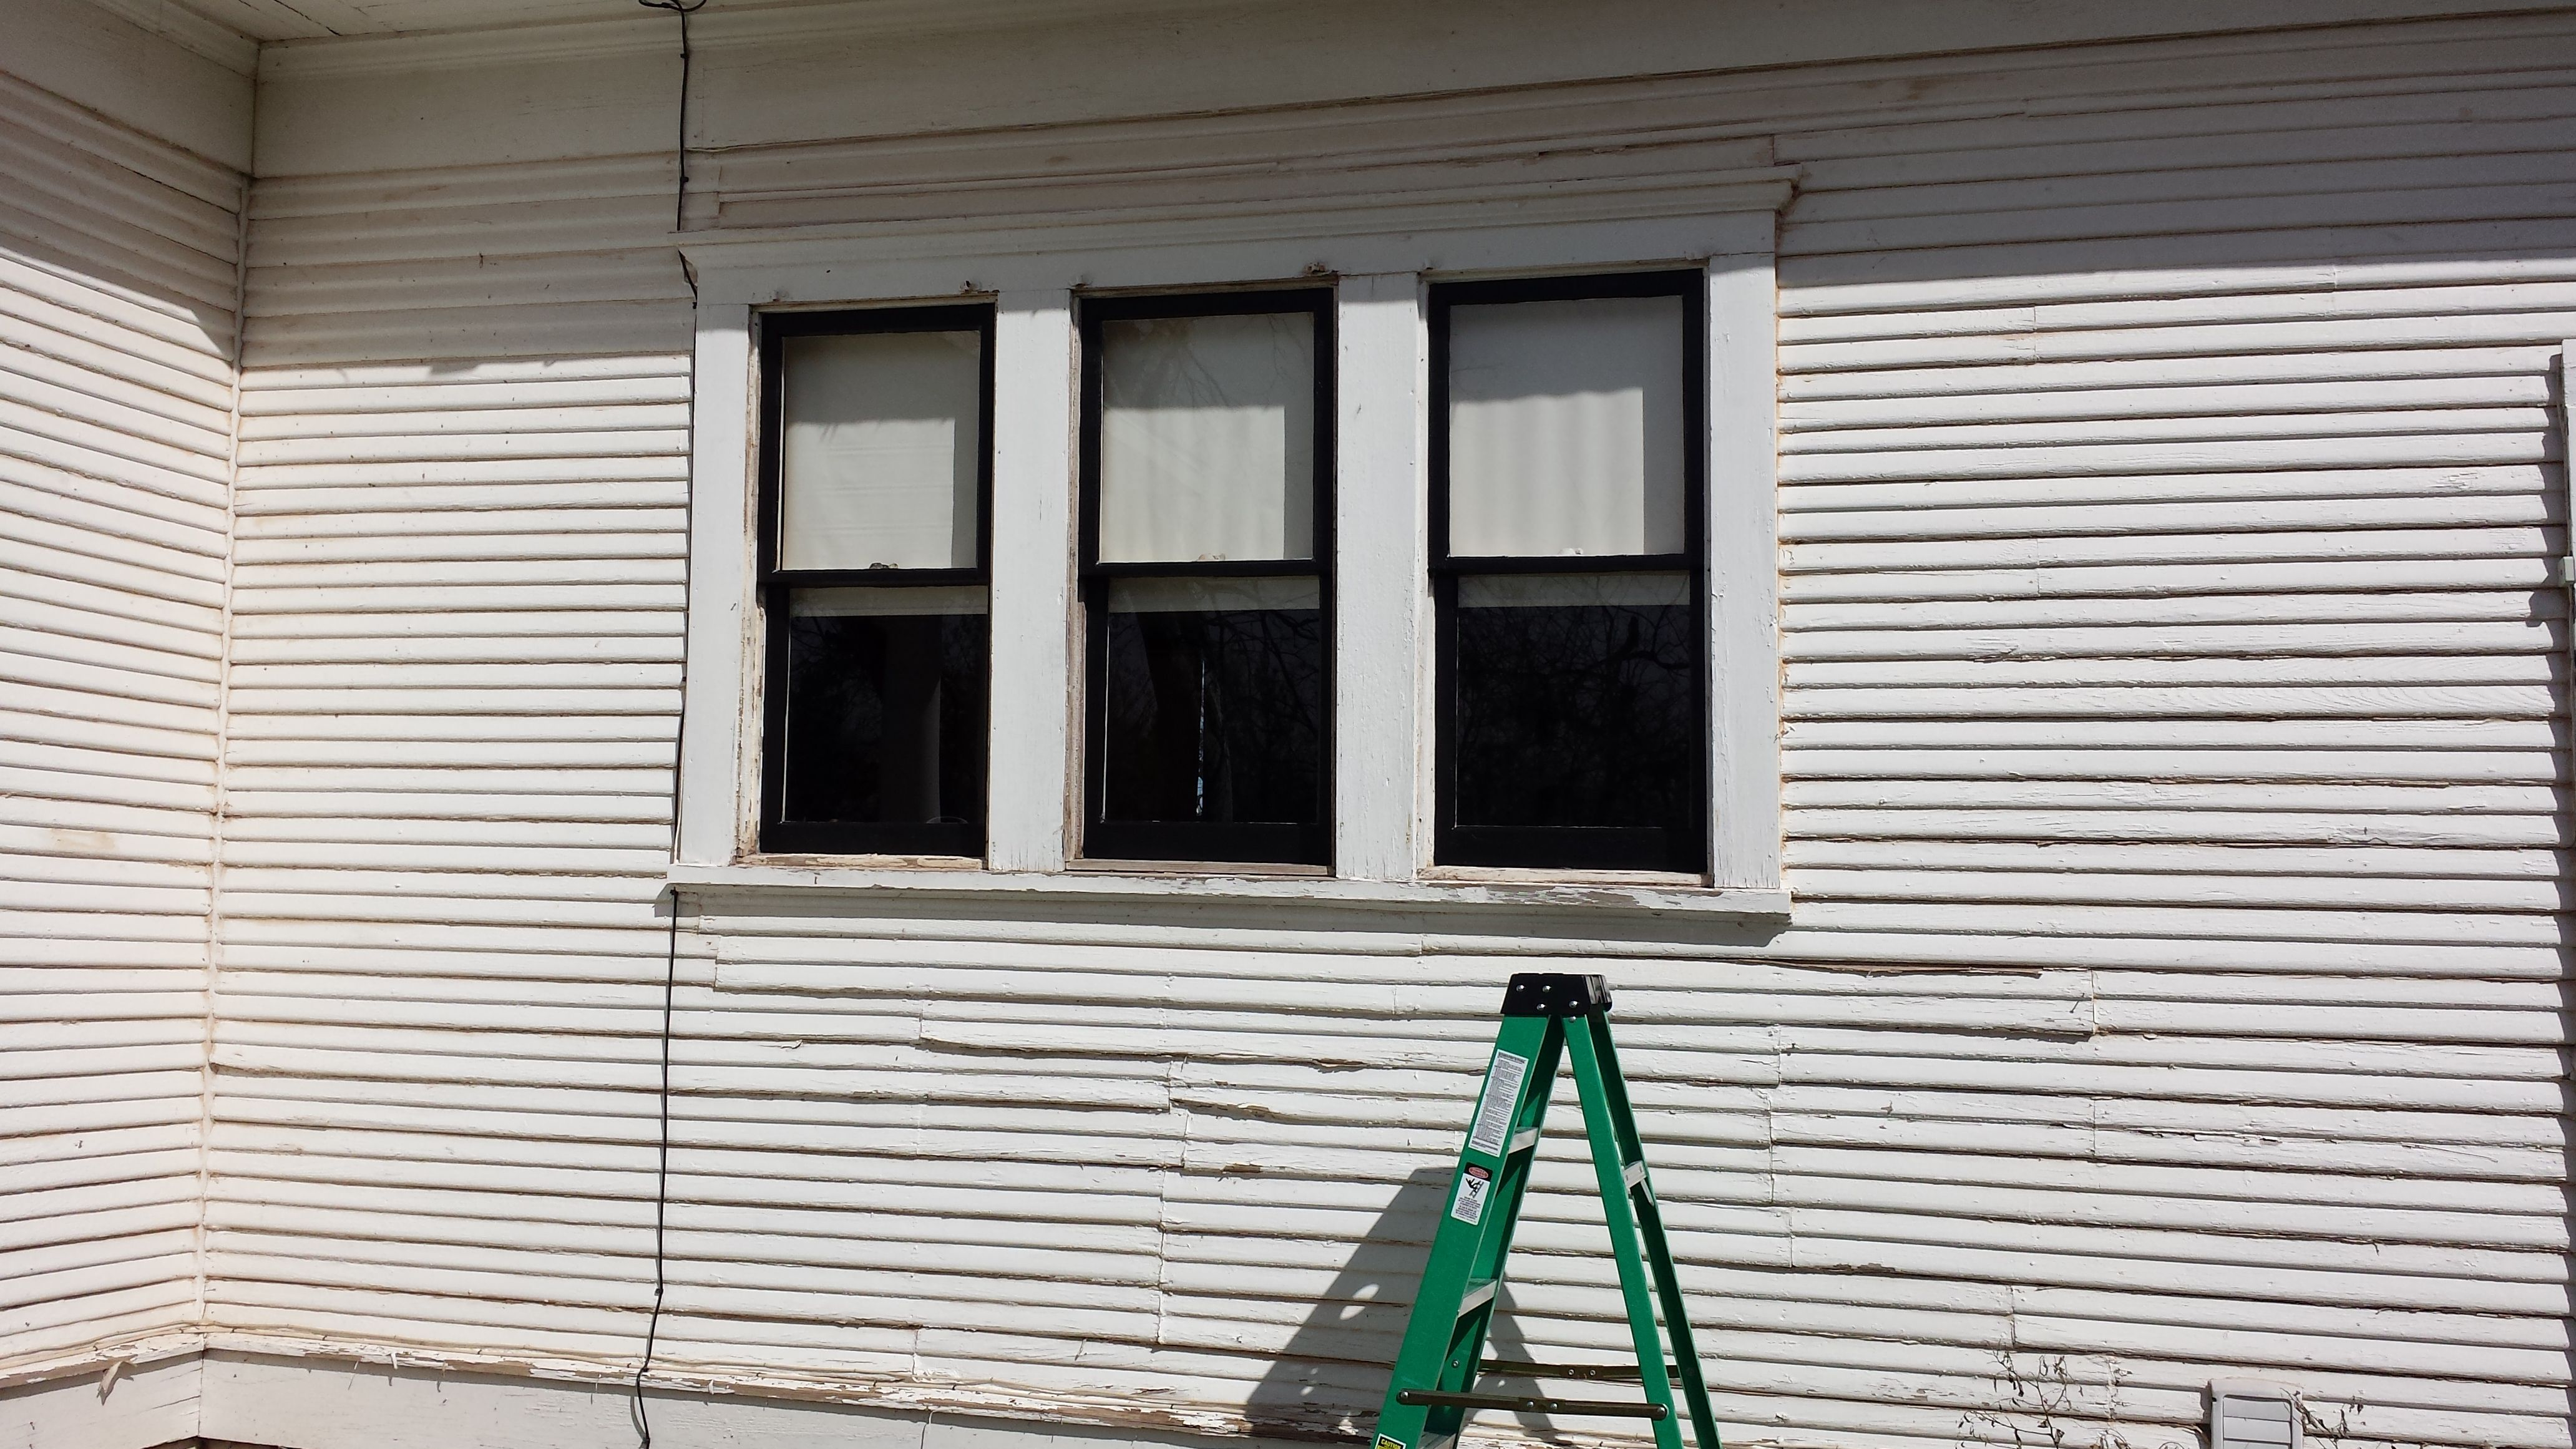 Here the windows are now restored.